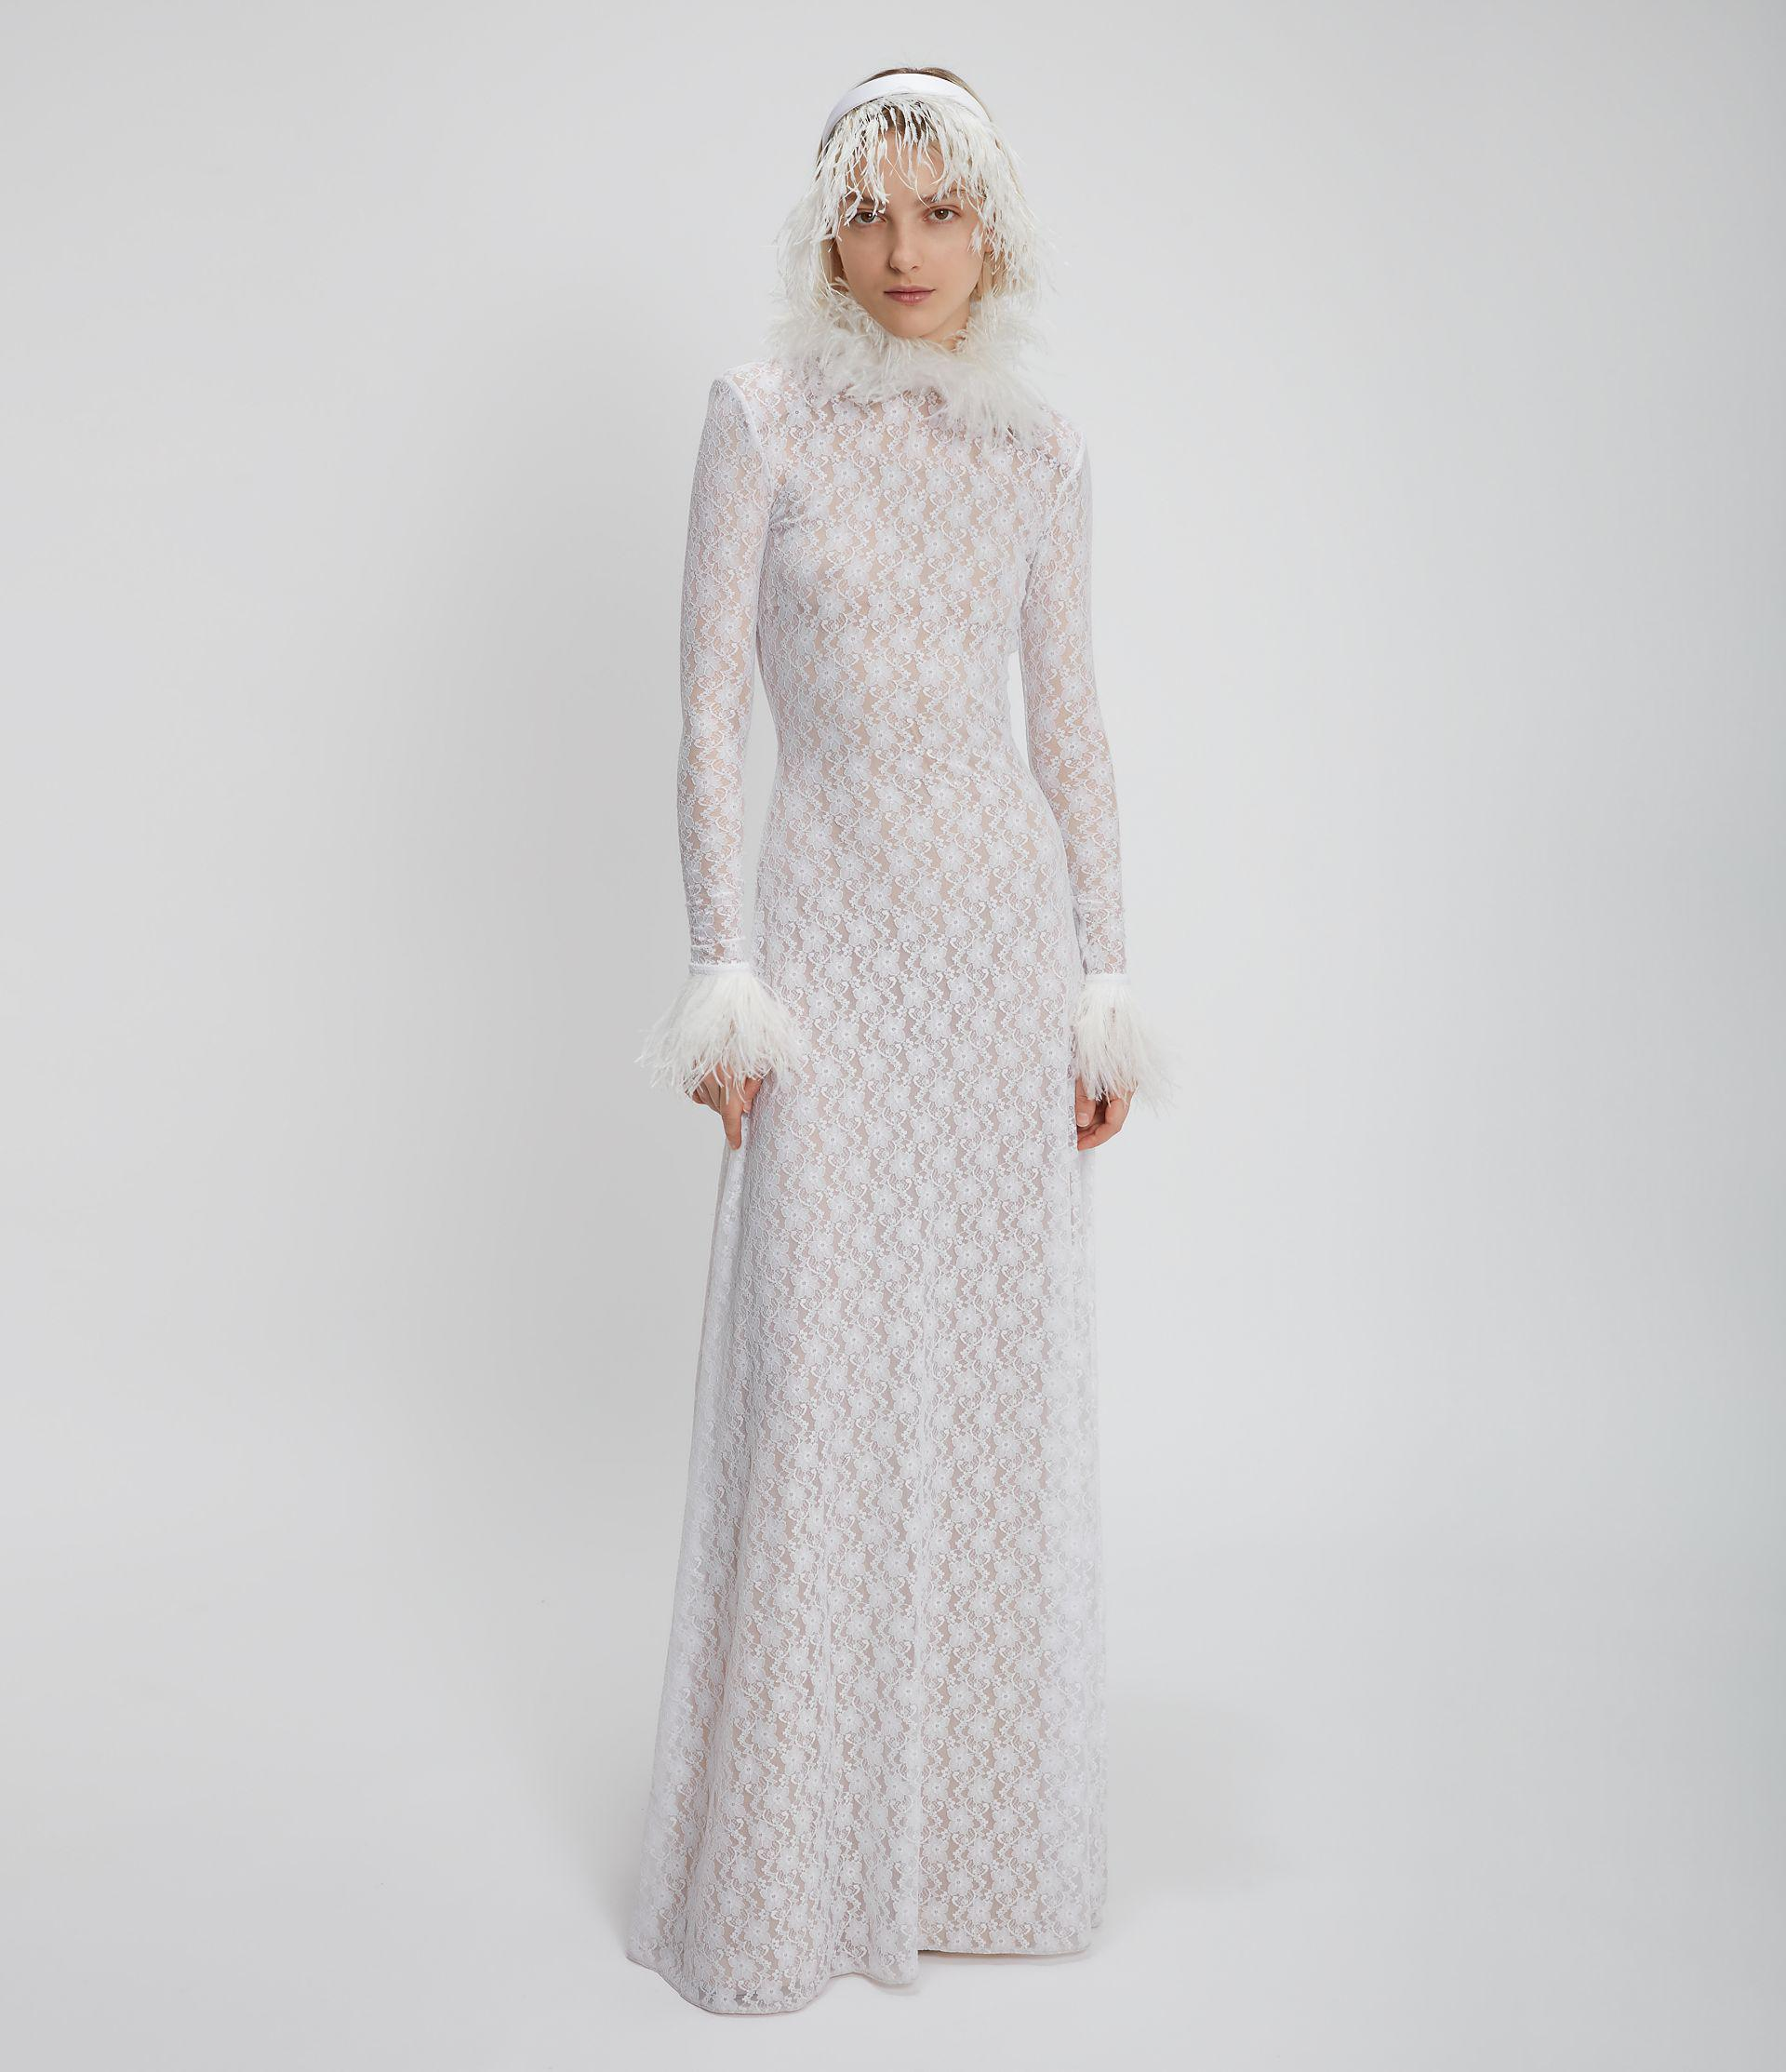 Christopher Kane Bridal: Lace Gown 4